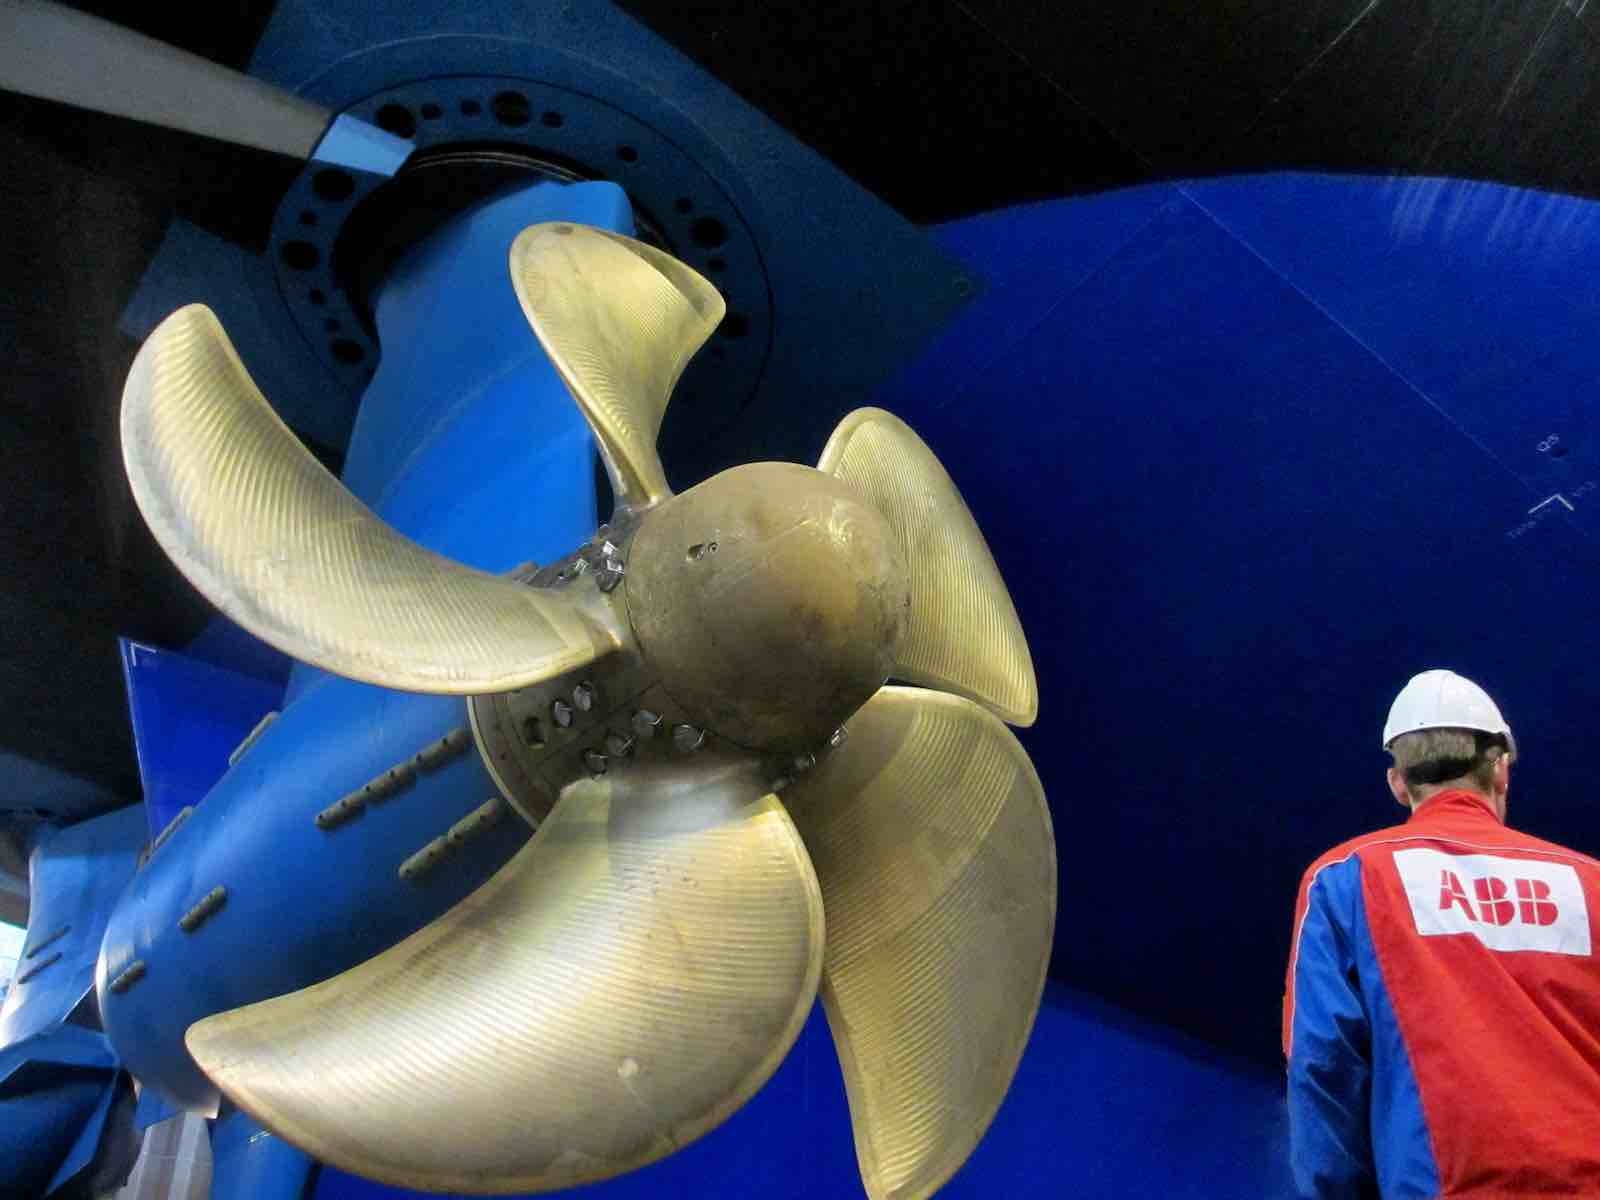 Carnival Corporation's new vessels to sail with ABB's Azipod propulsion